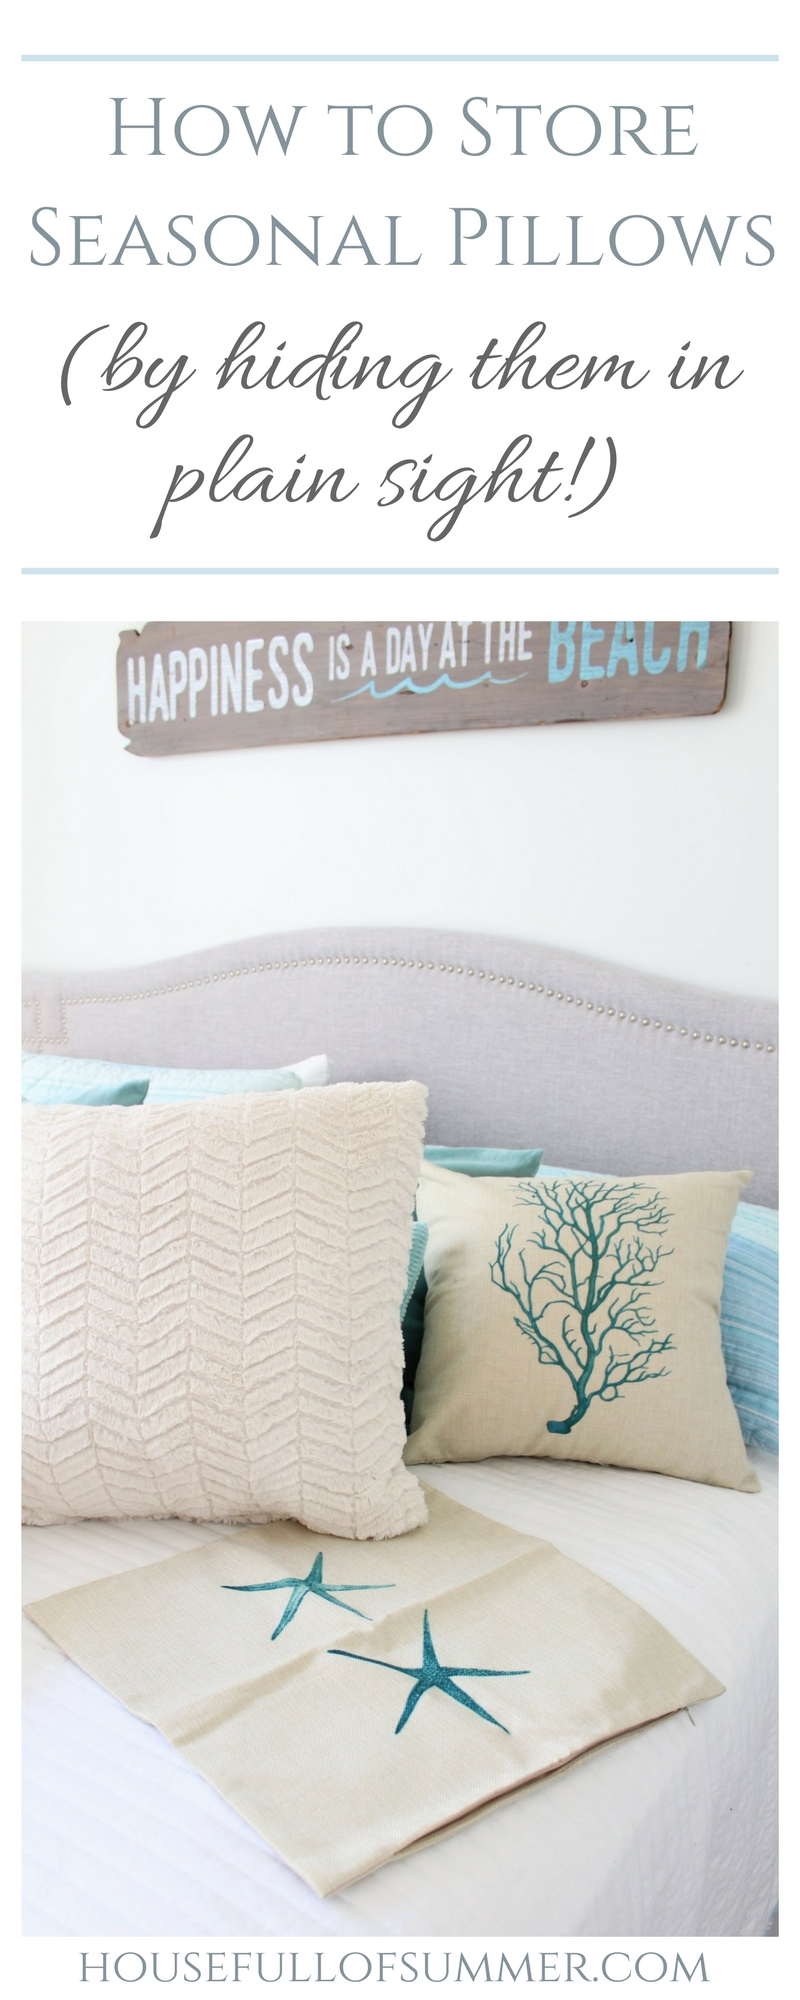 How to Store Seasonal Pillows by Hiding Them in Plain Sight | House Full of Summer - what to do with extra pilows, throw pillow storage solutions, christmas pillow storage, coastal pillow covers, starfish coral seahorse seafan cushion covers, cheap throw pillow ideas, how to repurpose pillows, coastal bedroom, guest room, white bedding, gray headboard